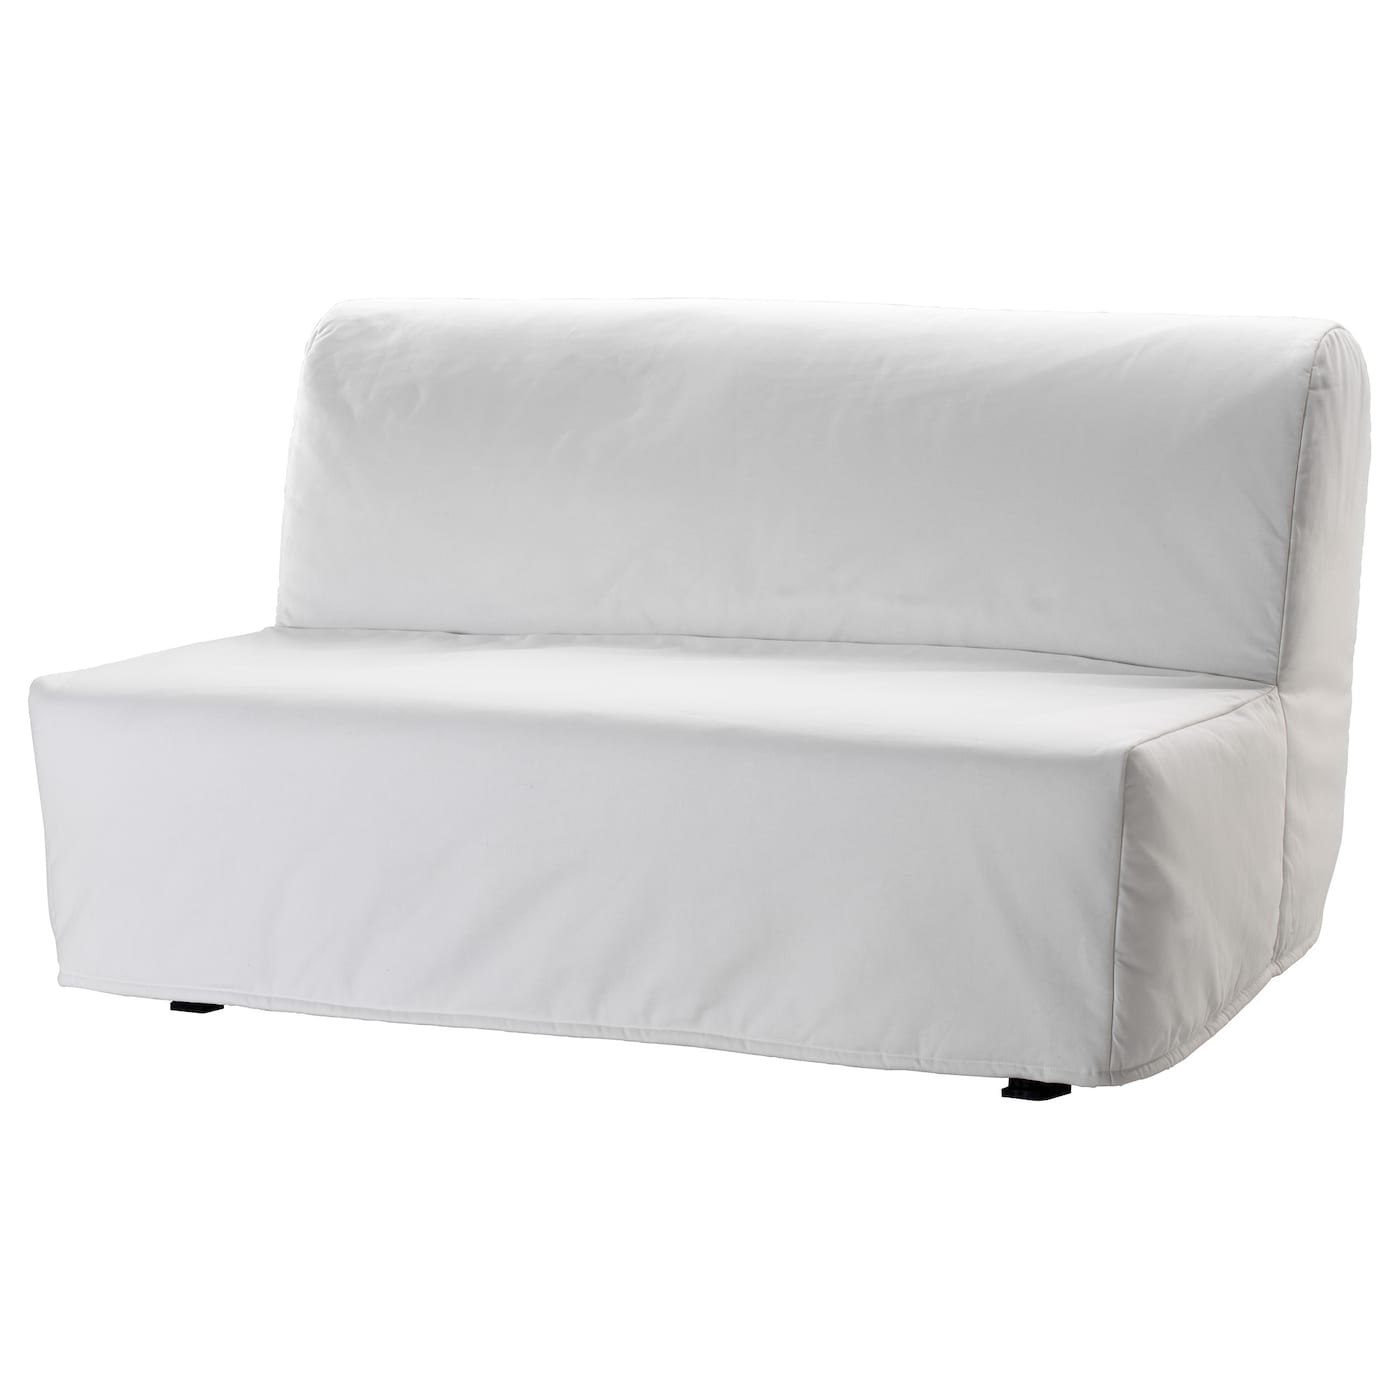 Lycksele two seat sofa bed cover ransta white ikea for White divan chair